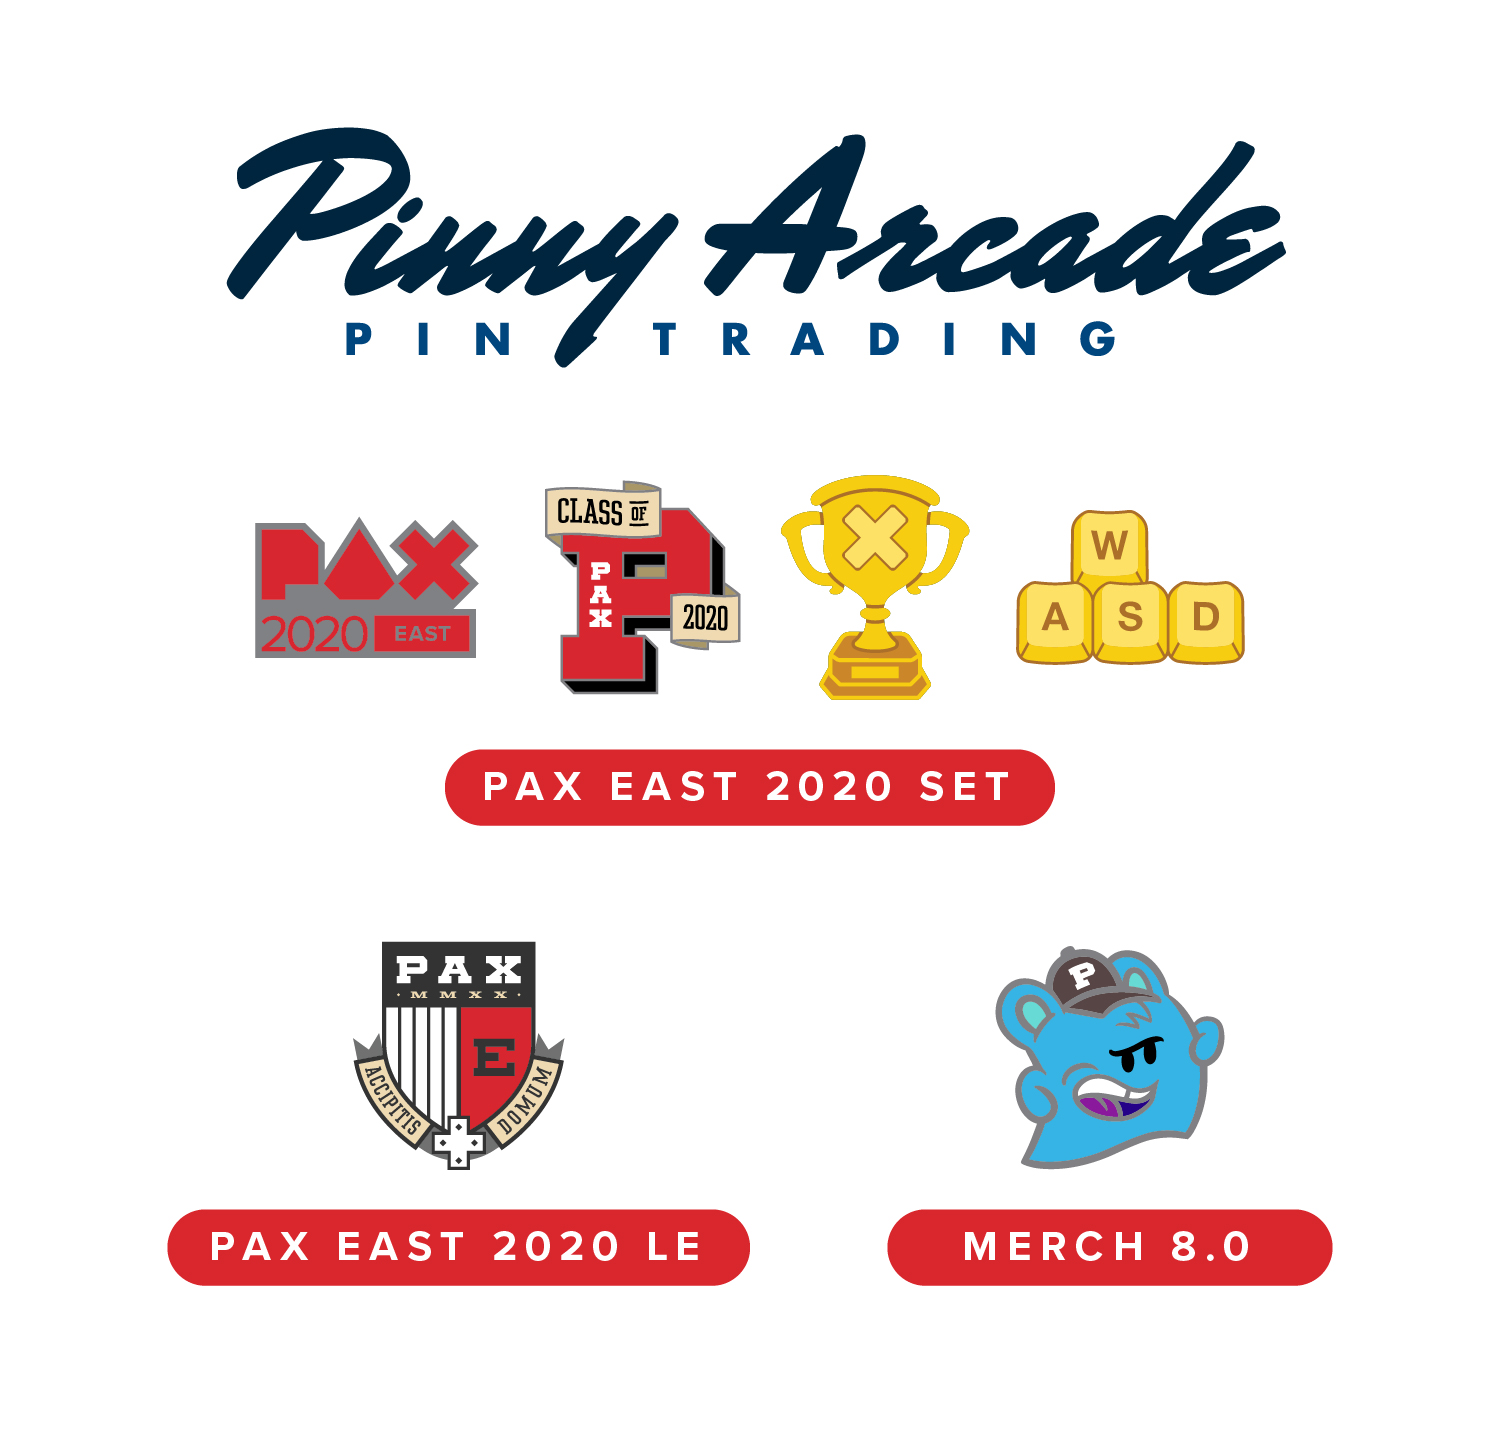 PAX EAST 2020 Show Pins